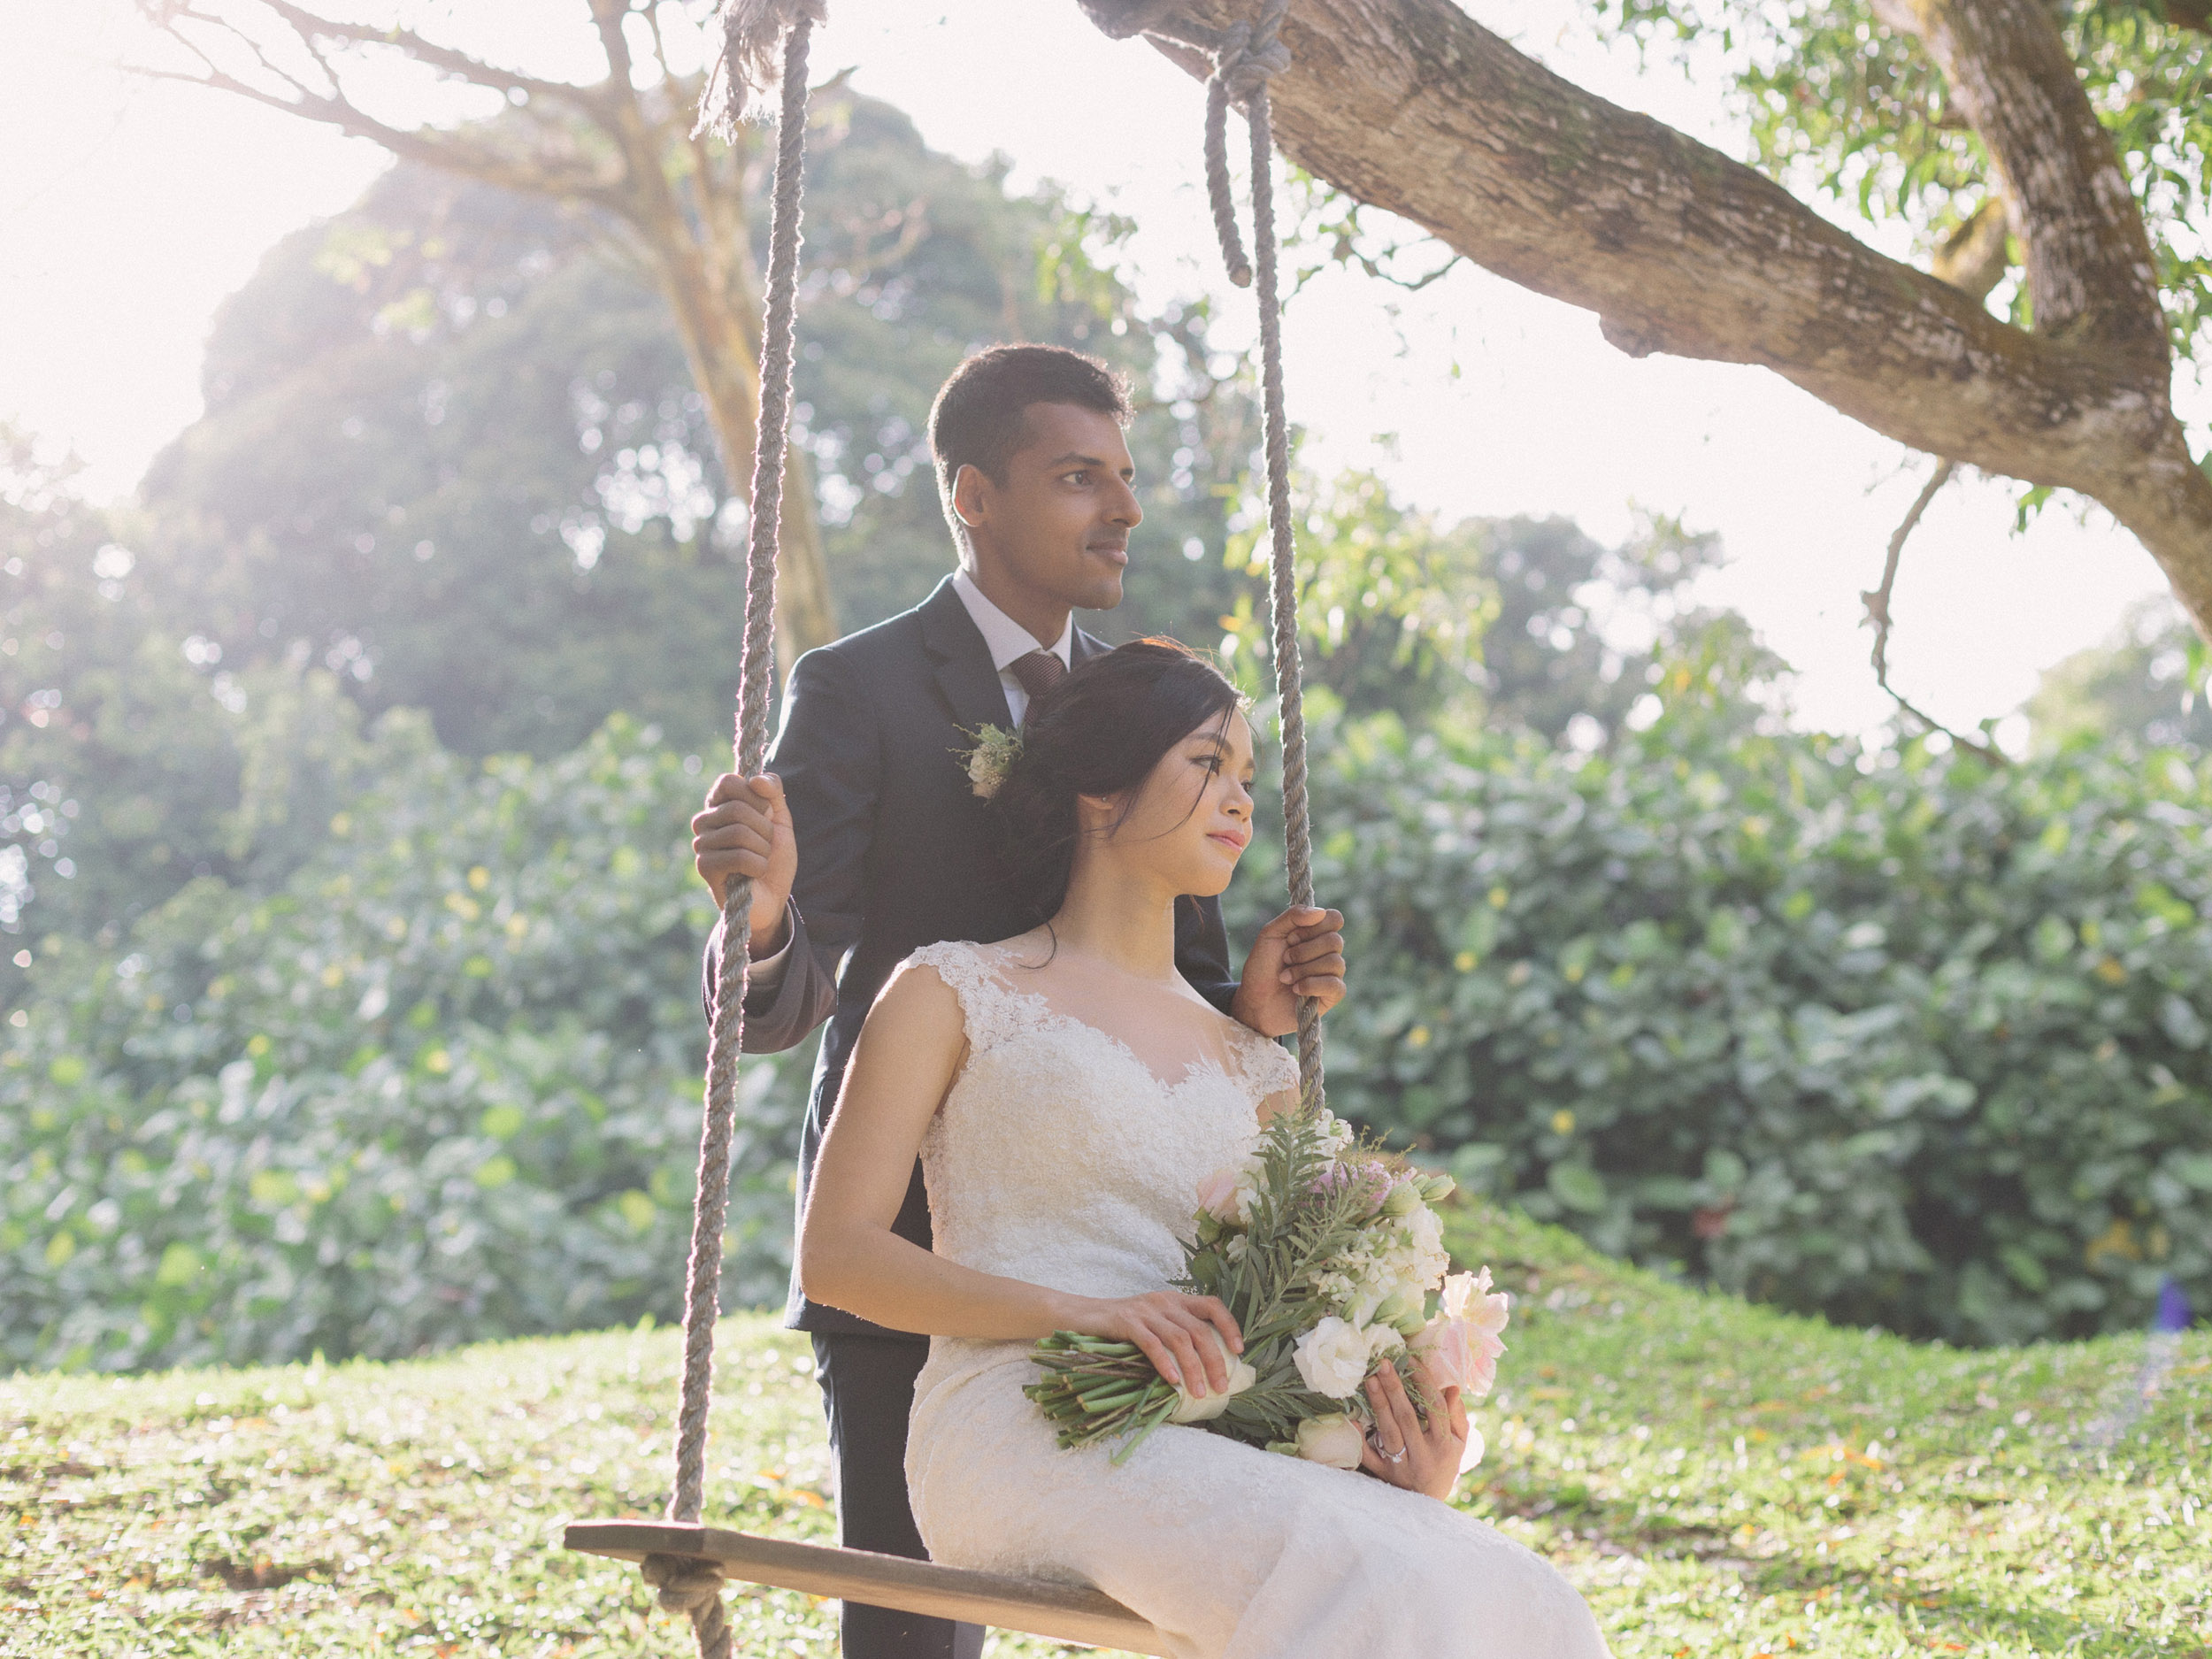 singapore-wedding-photographer-wemadethese-suriya-xinqi-07.jpg